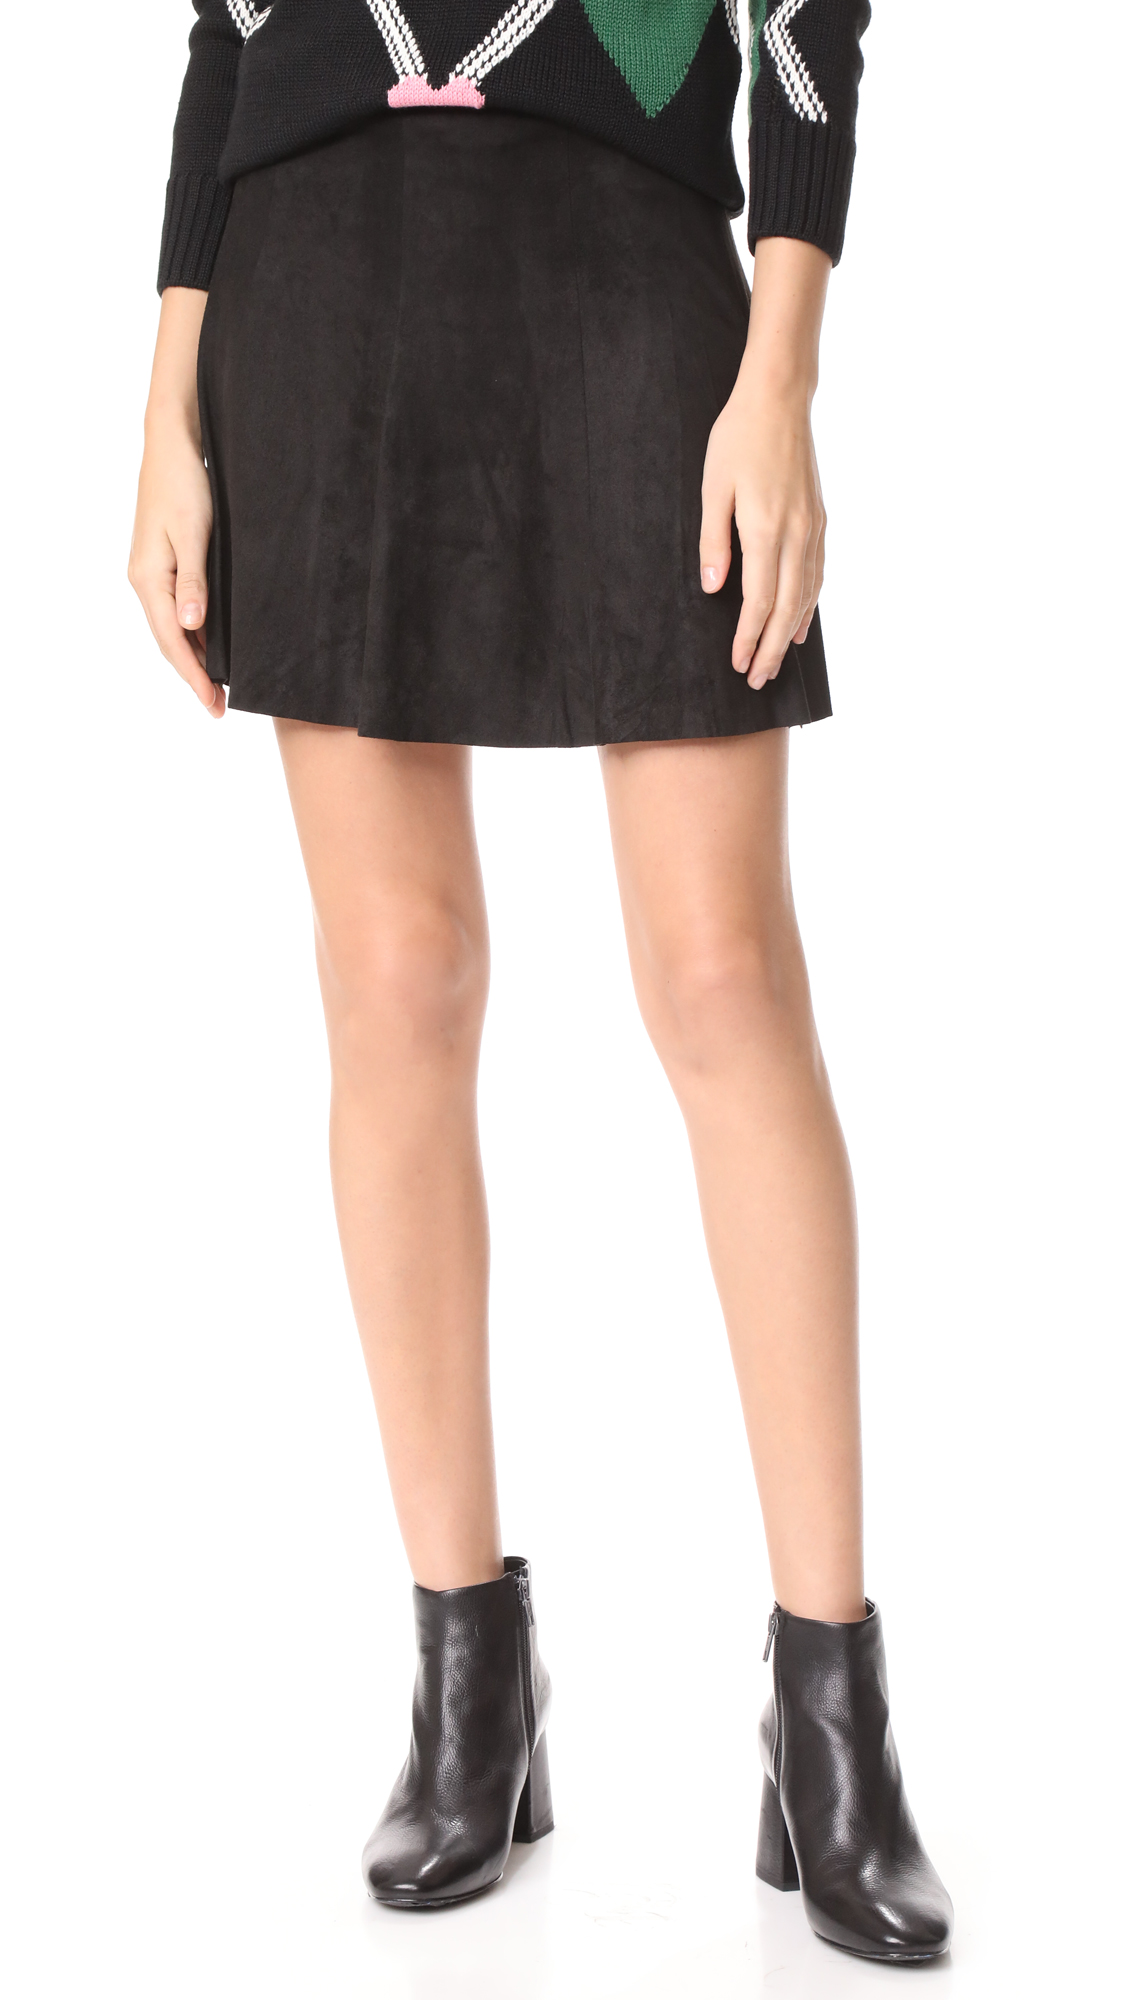 BB Dakota Aileen Faux Suede Skirt - Black